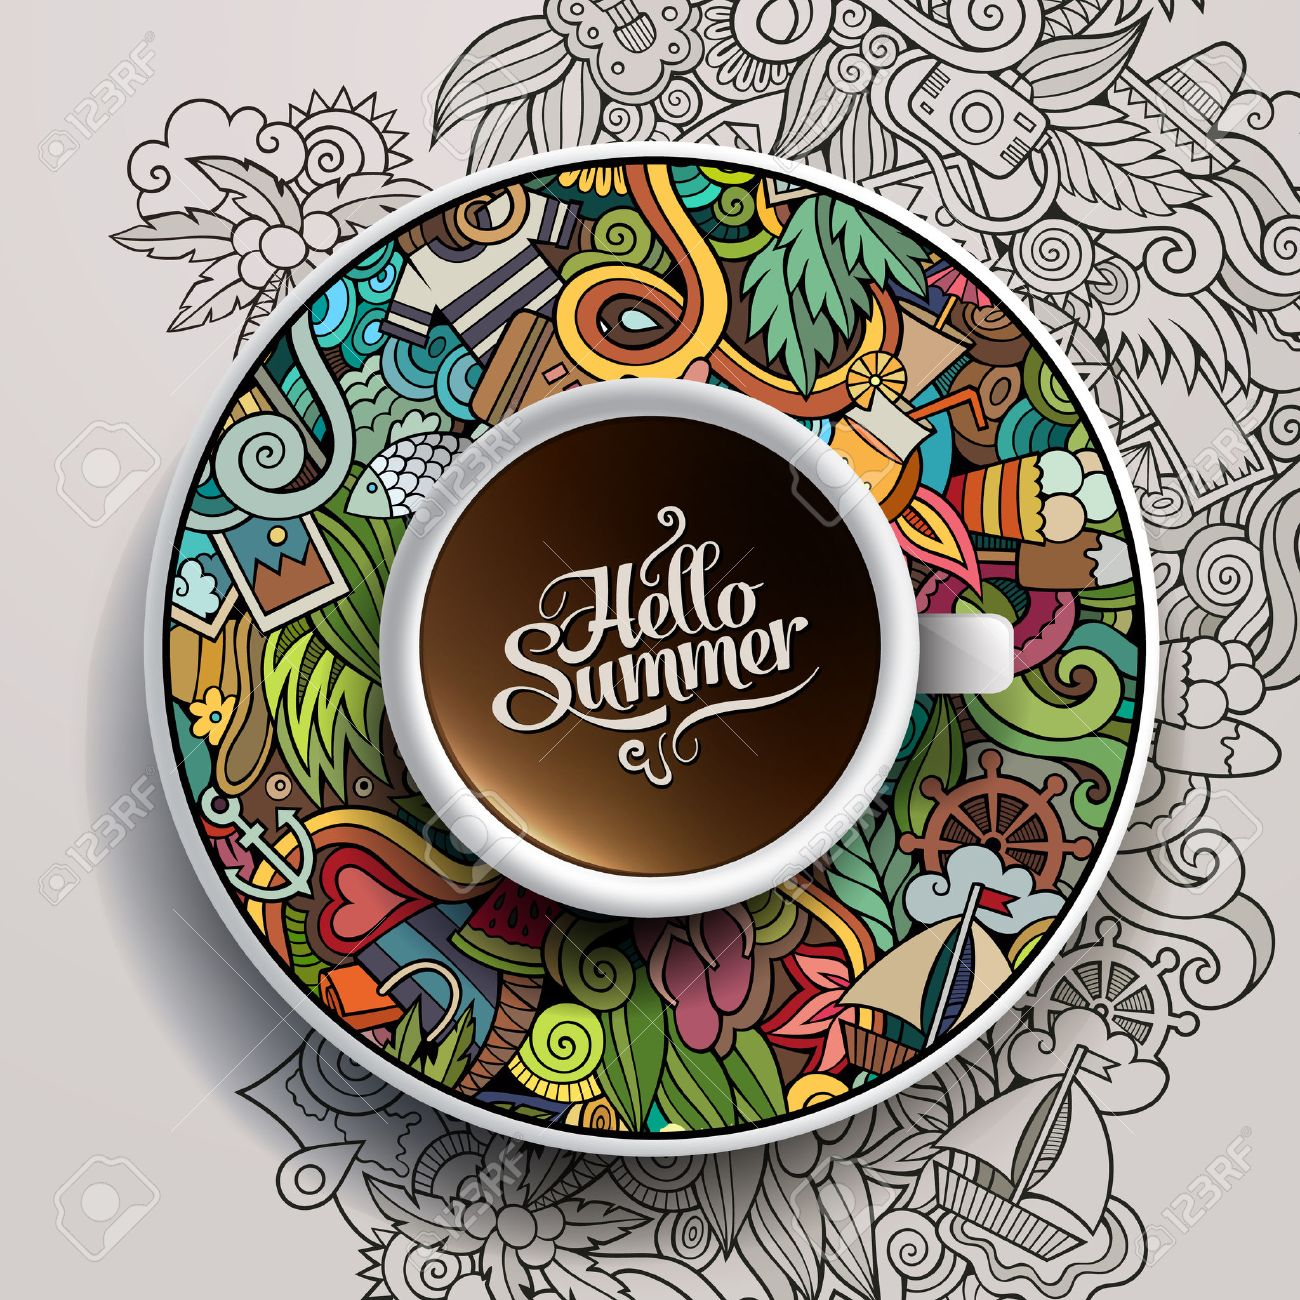 Vector illustration with a Cup of coffee and hand drawn watercolor summer doodles on a saucer and background - 40494142